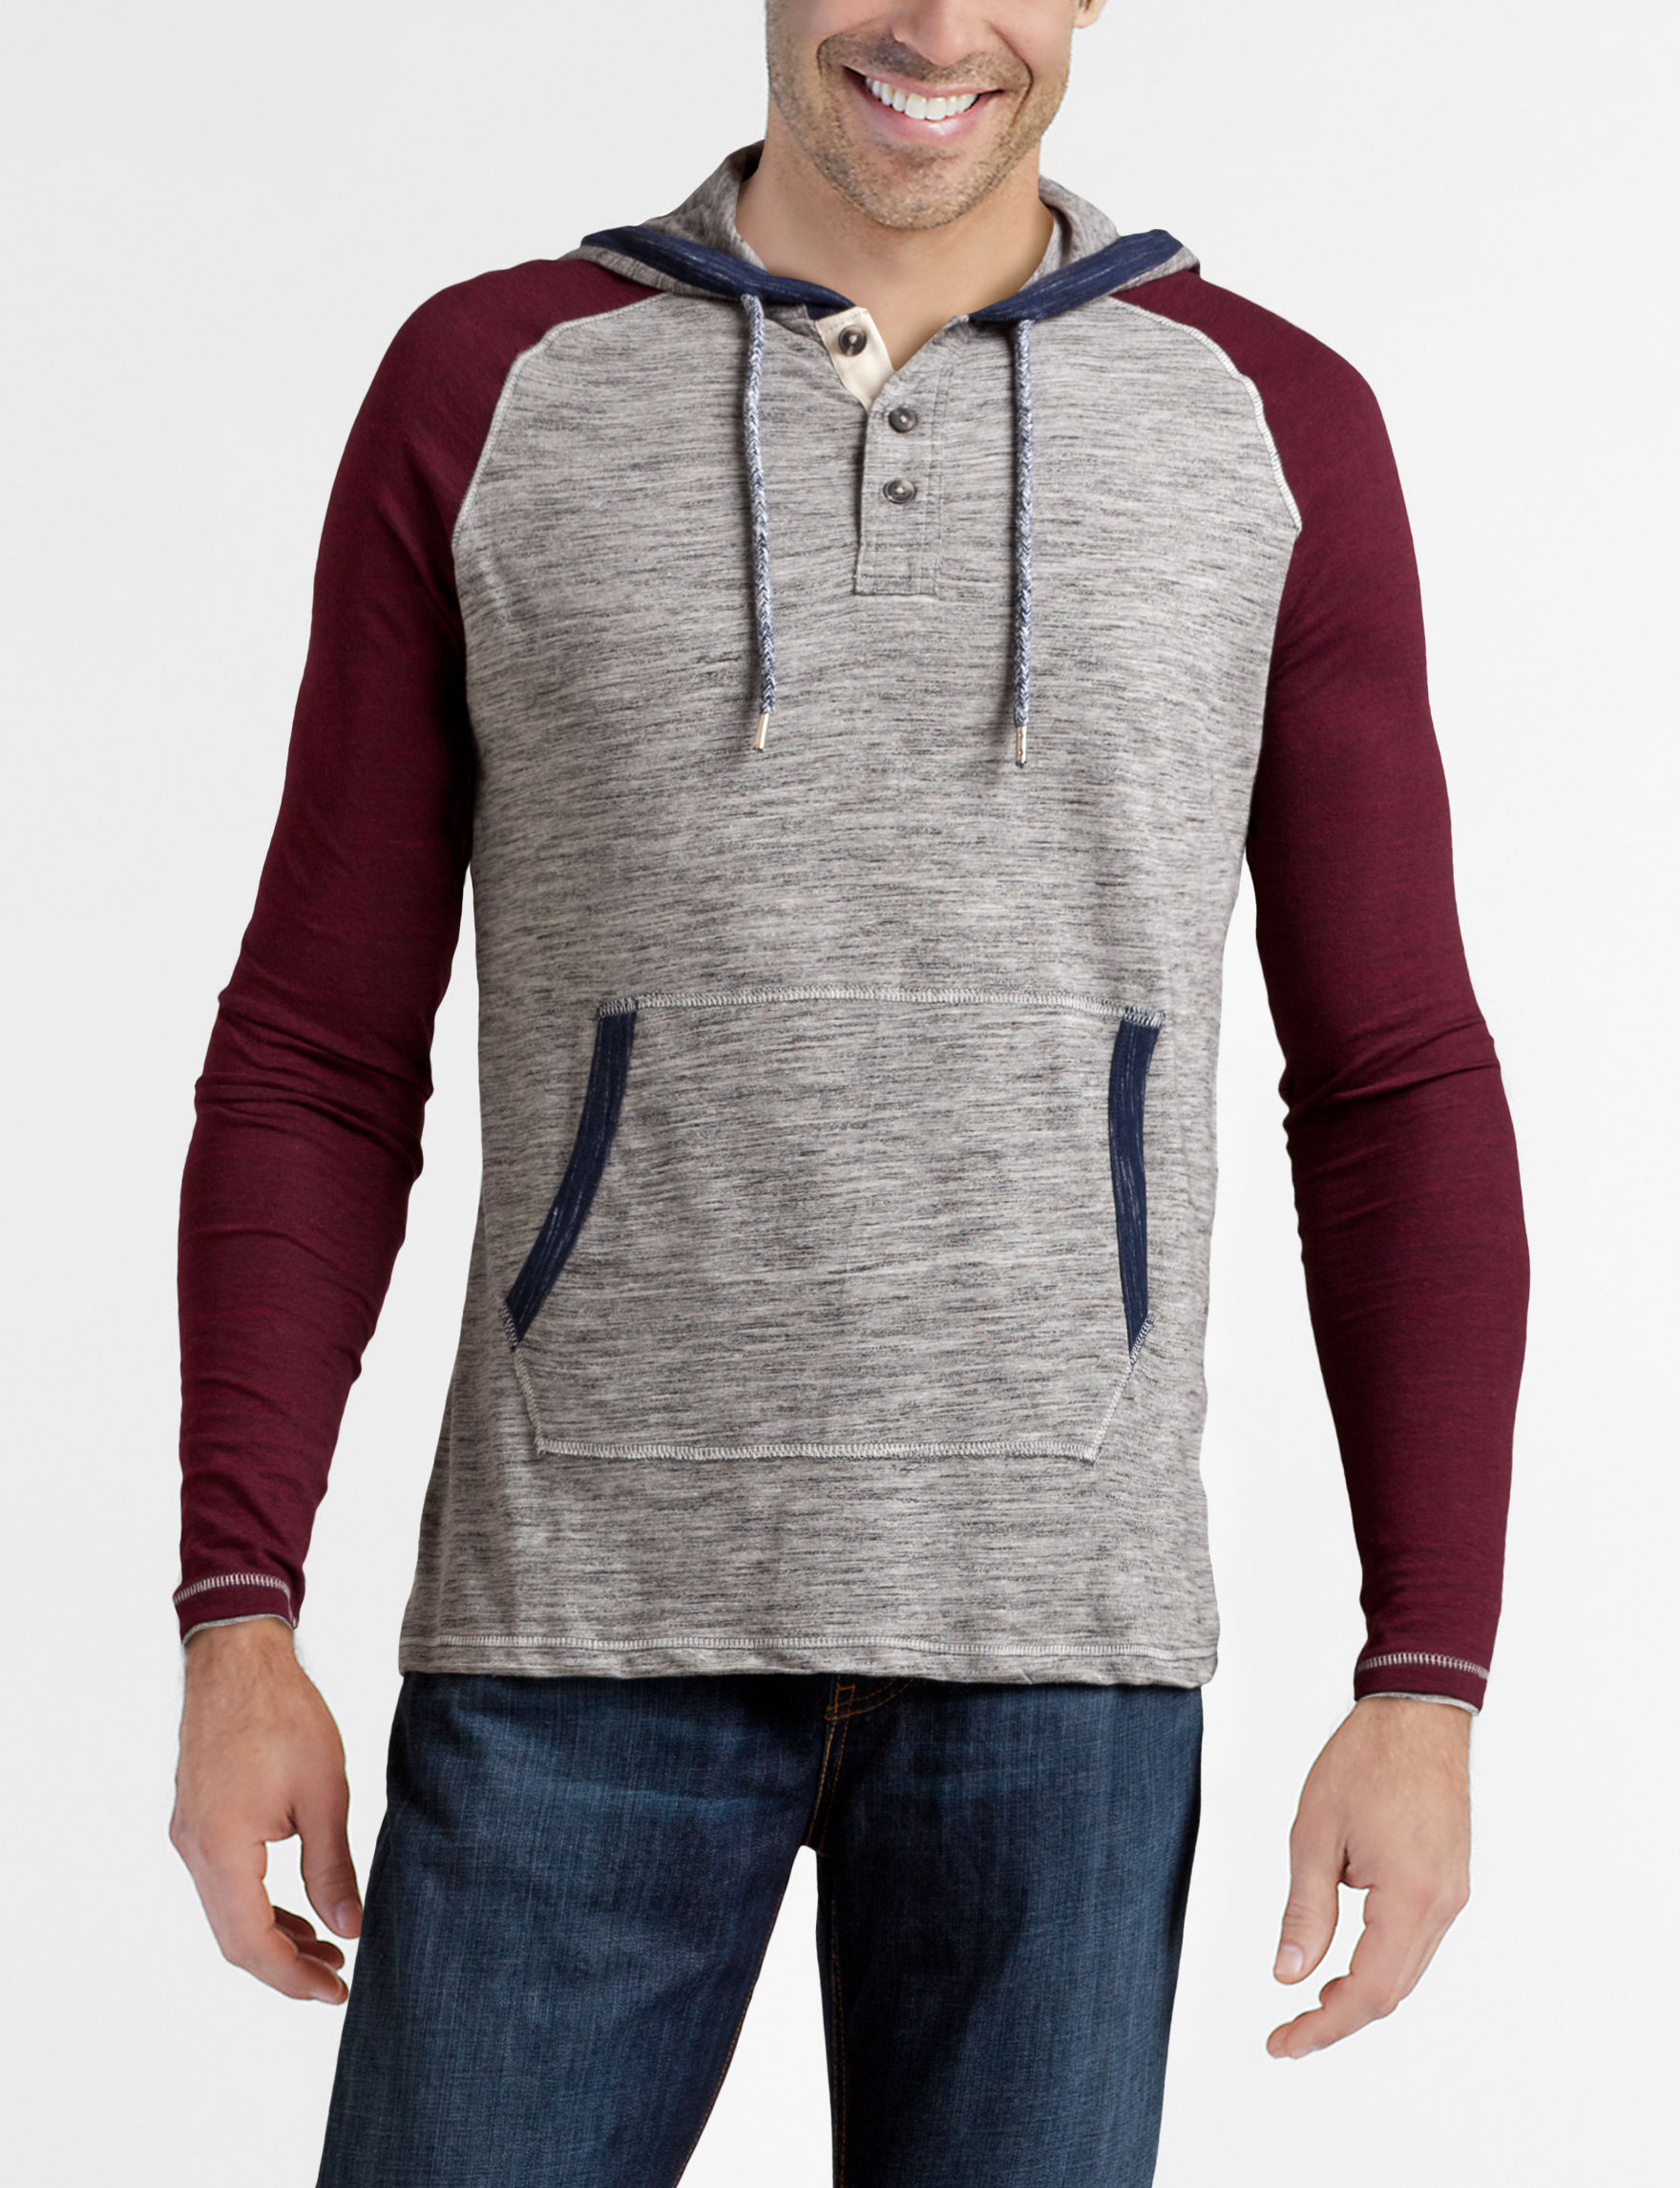 Rustic Blue Burgundy/Grey Pull-overs